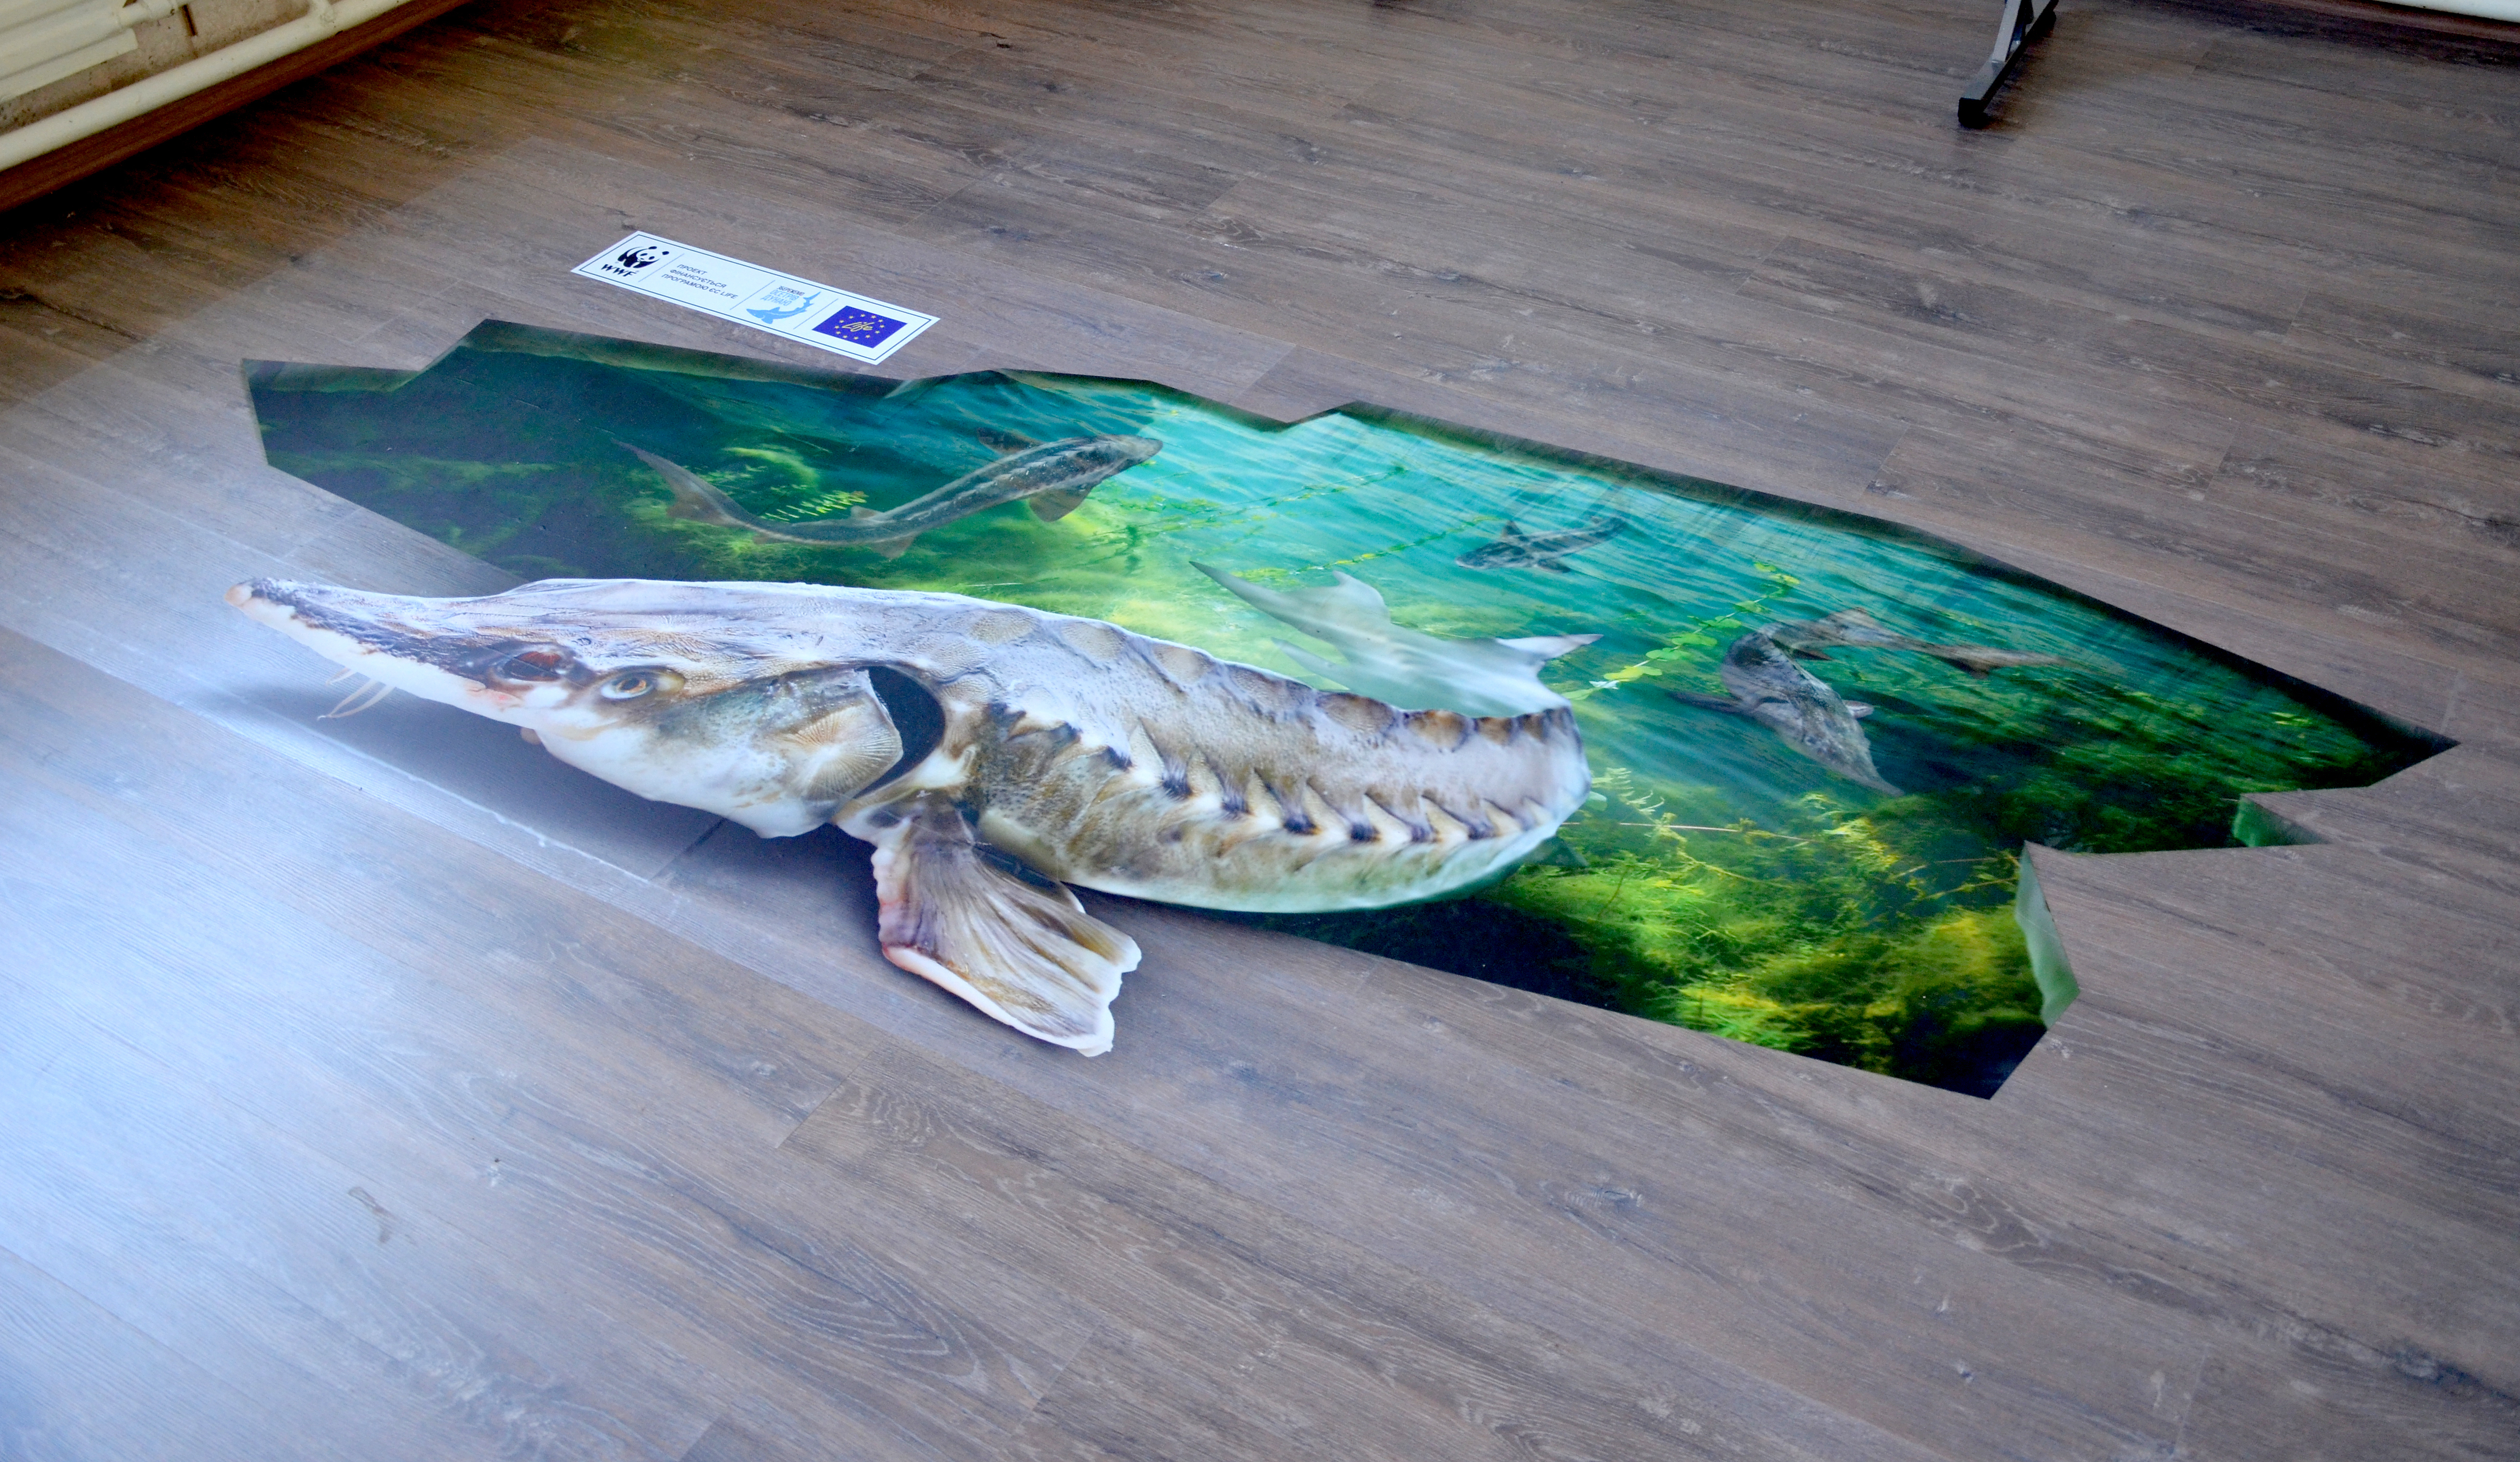 A 3D Sturgeon can be now seen in Vylkovo